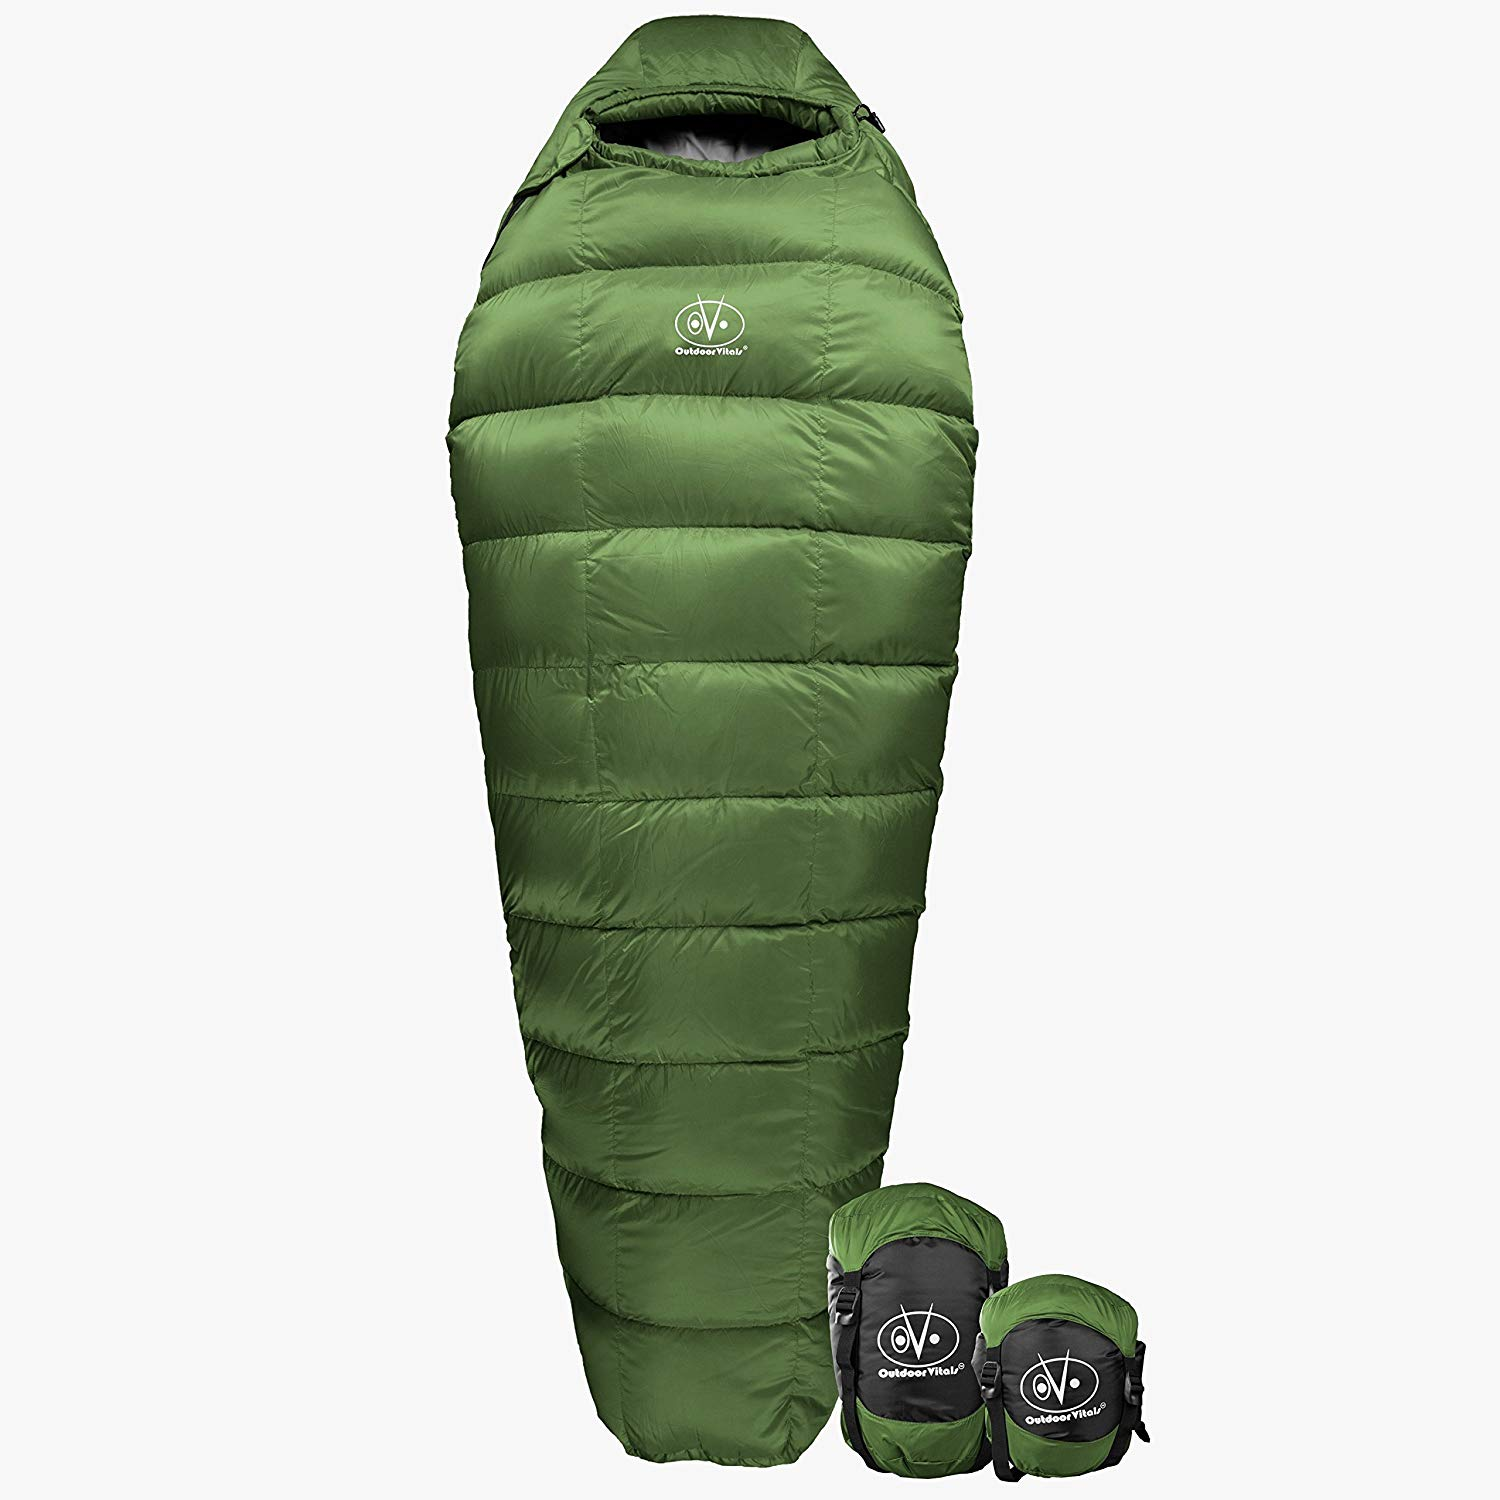 An image related to Outdoor Vitals Summit 0 Degree Down Sleeping Bag